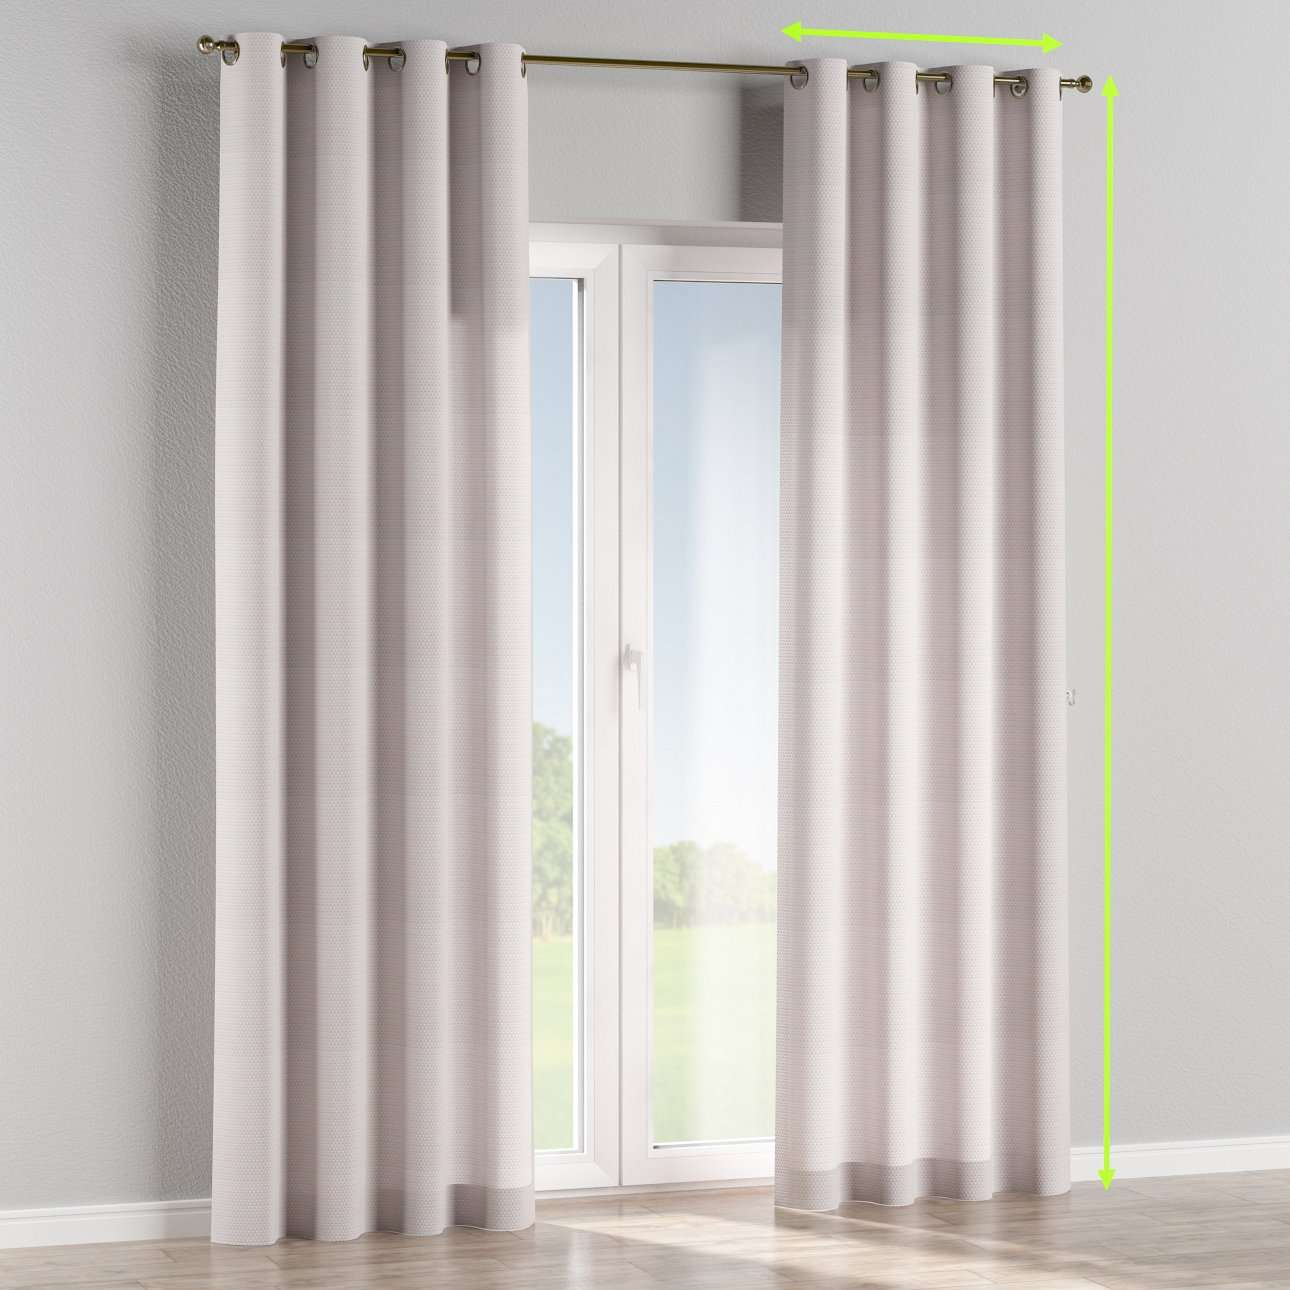 Eyelet curtains in collection Rustica, fabric: 140-28